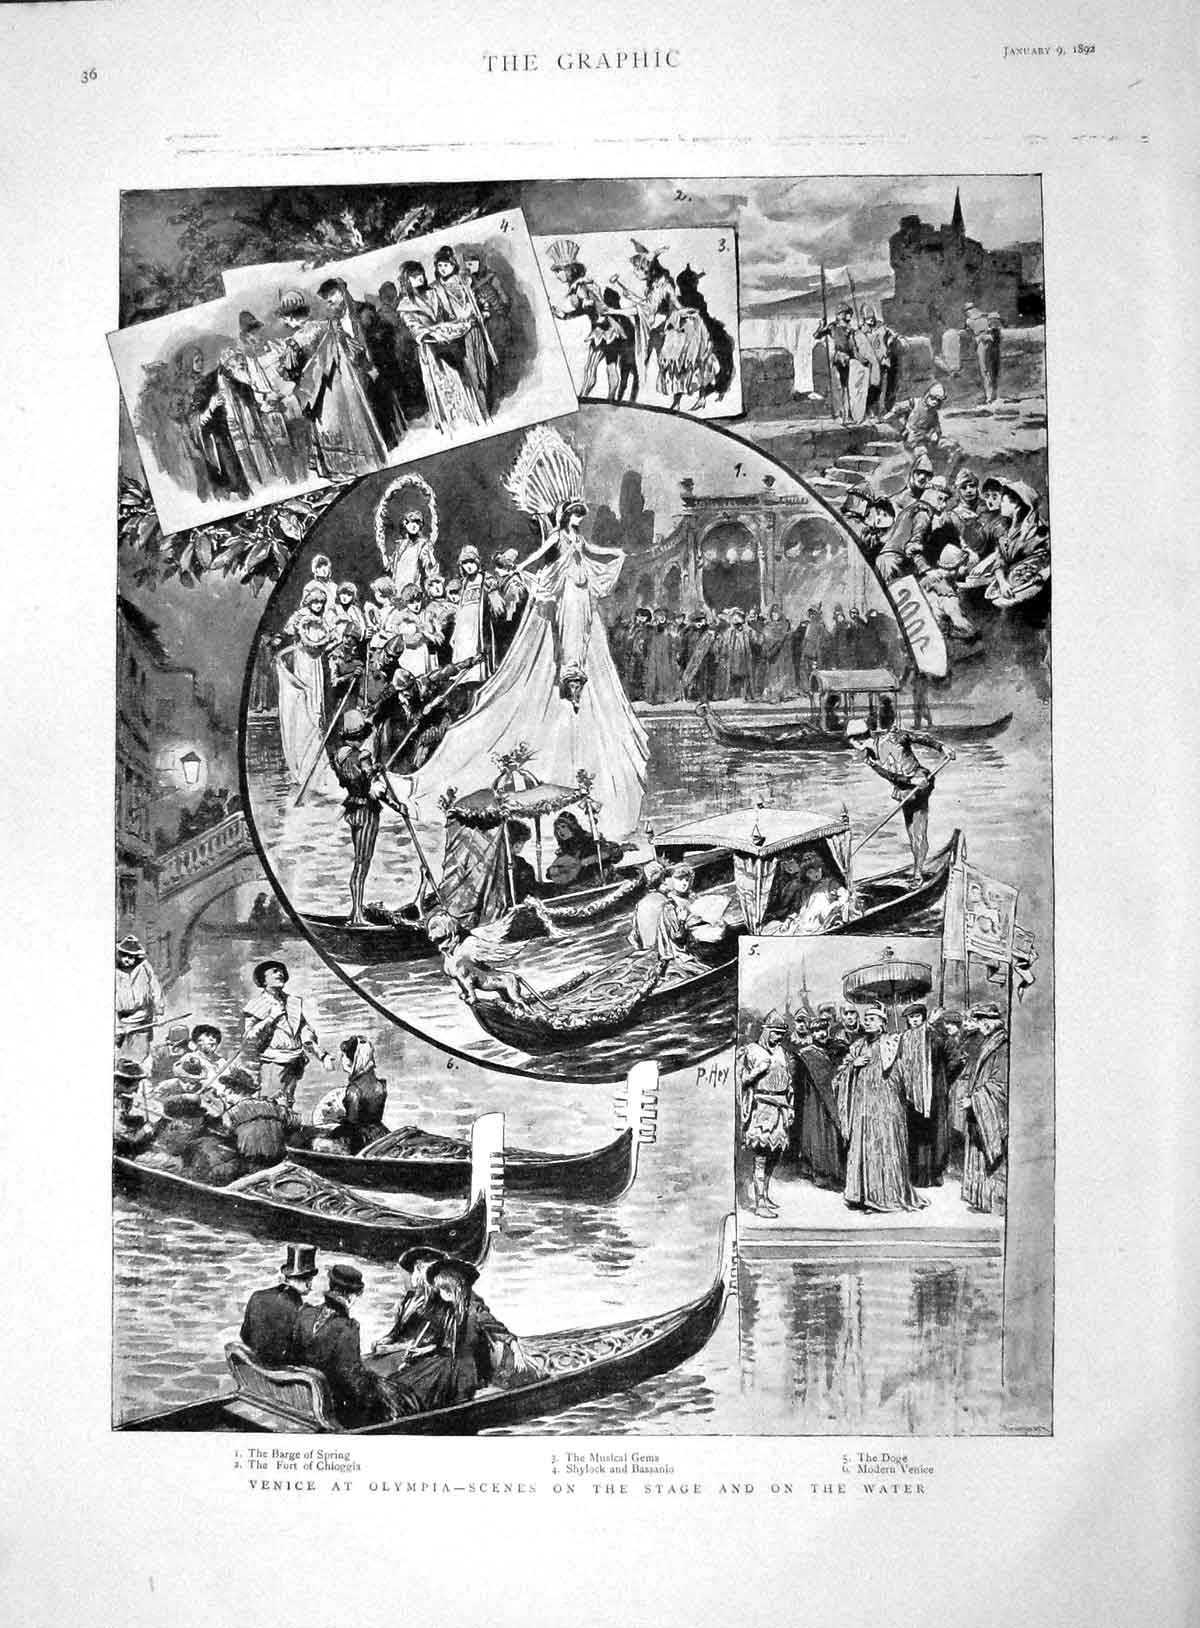 Old-Antique-Print-1892-Venice-Olympia-Barge-Spring-Fort-Chioggia-Bassanio-19th